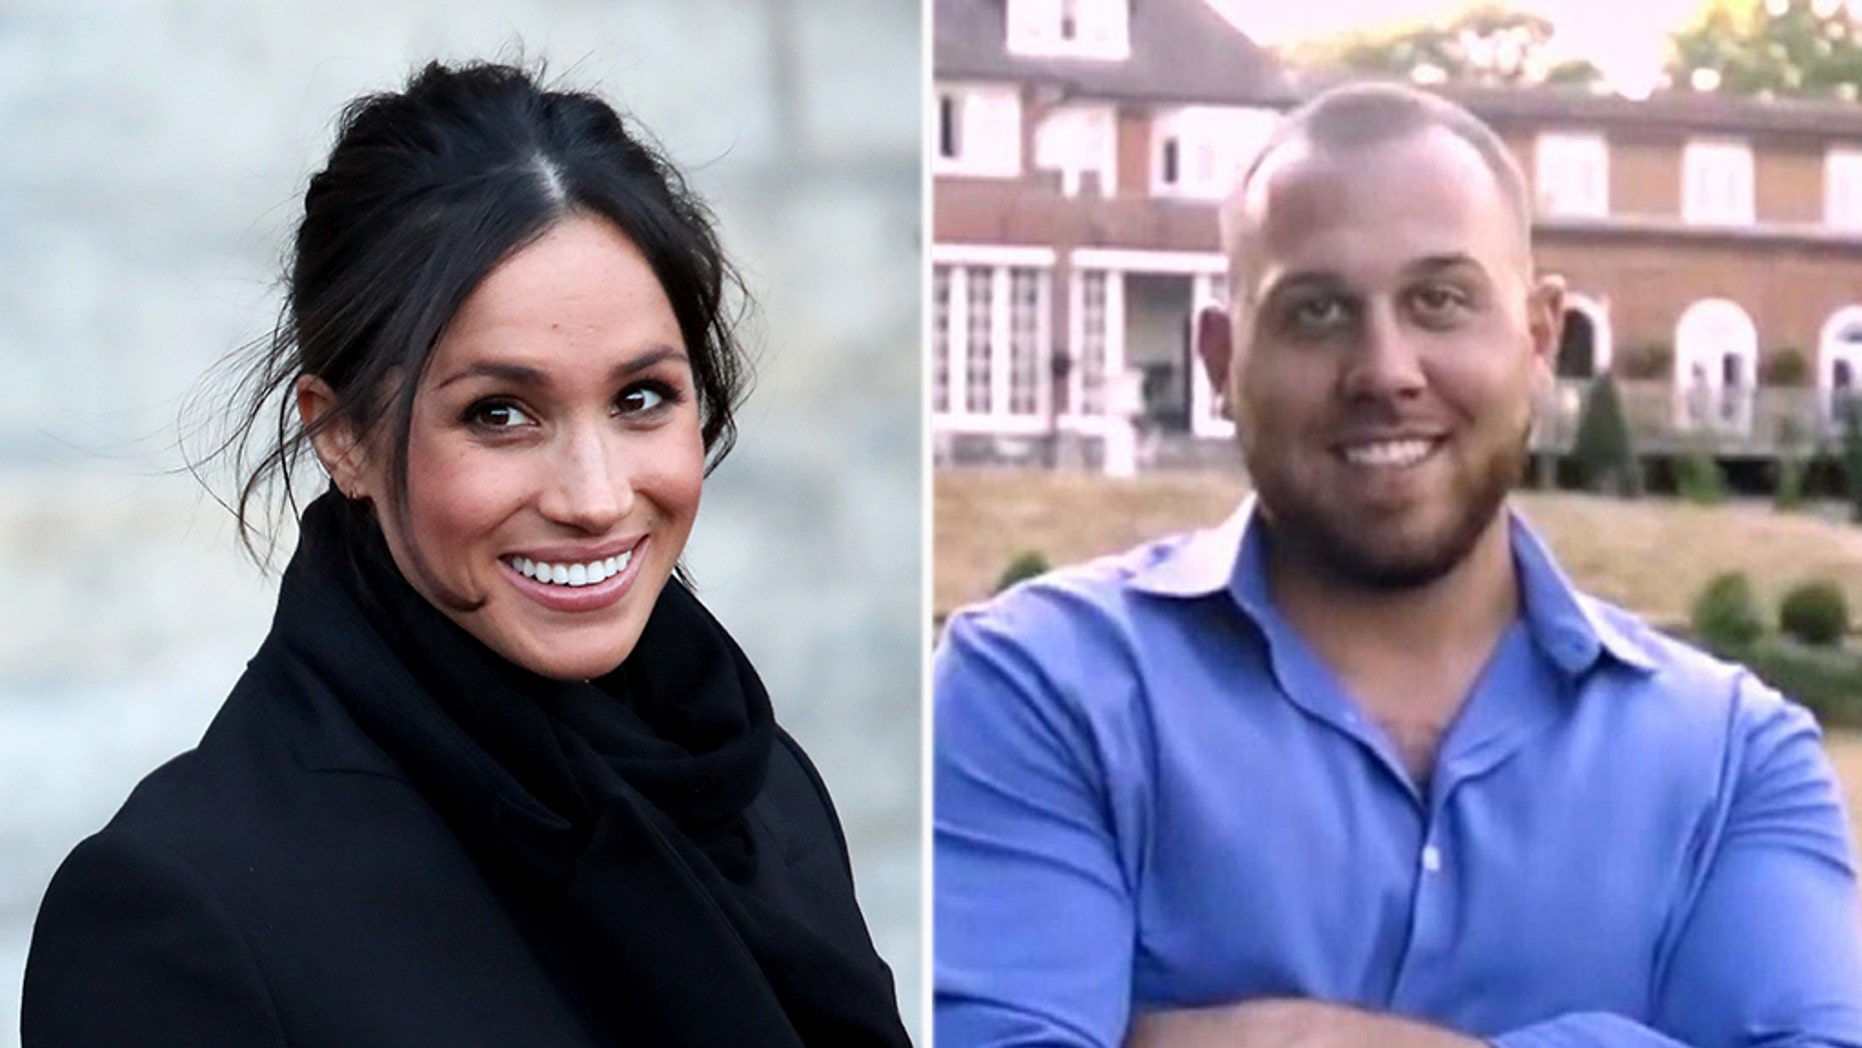 Meghan Markle's nephew, Tyler Dooley, opened up about the Duchess of Sussex's family in a new interview with The Sun.